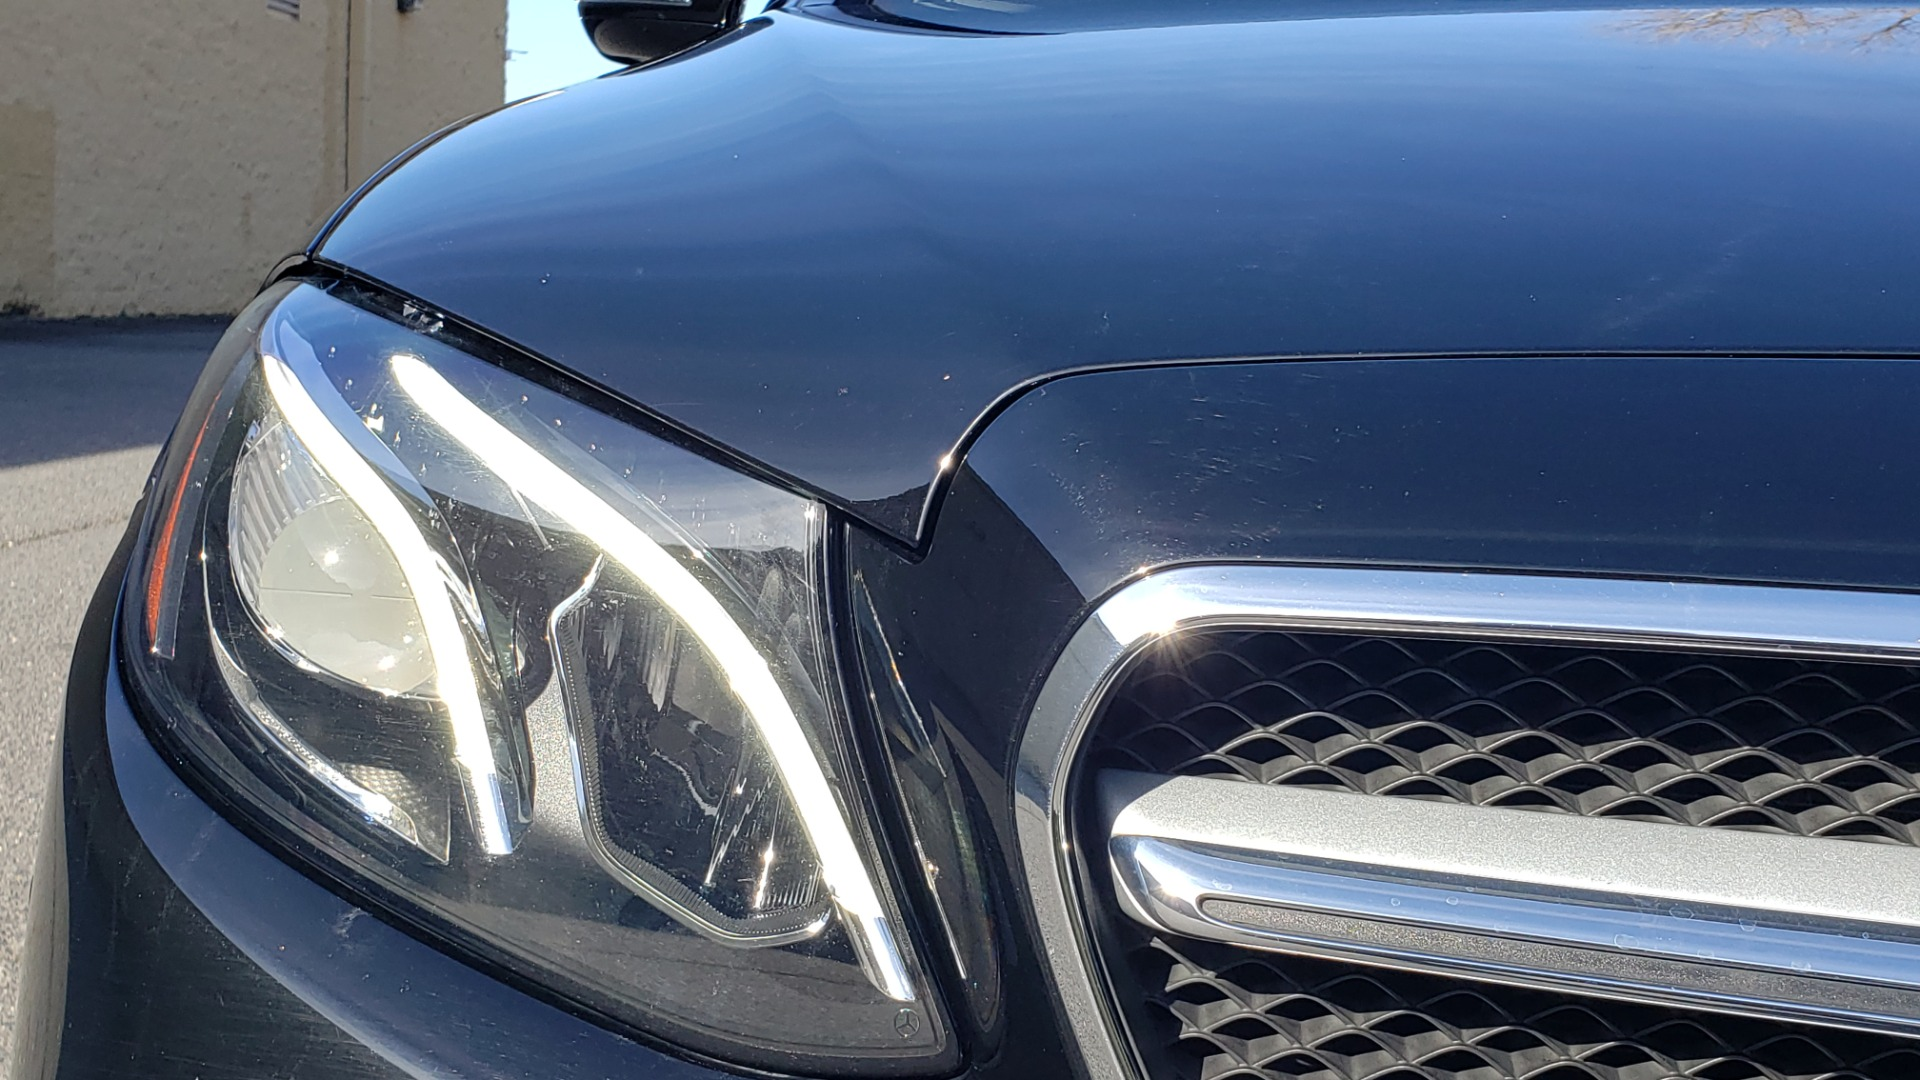 Used 2017 Mercedes-Benz E-CLASS E 300 PREMIUM / NAV / SUNROOF / BURMESTER / HTD STS / REARVIEW for sale $29,995 at Formula Imports in Charlotte NC 28227 22